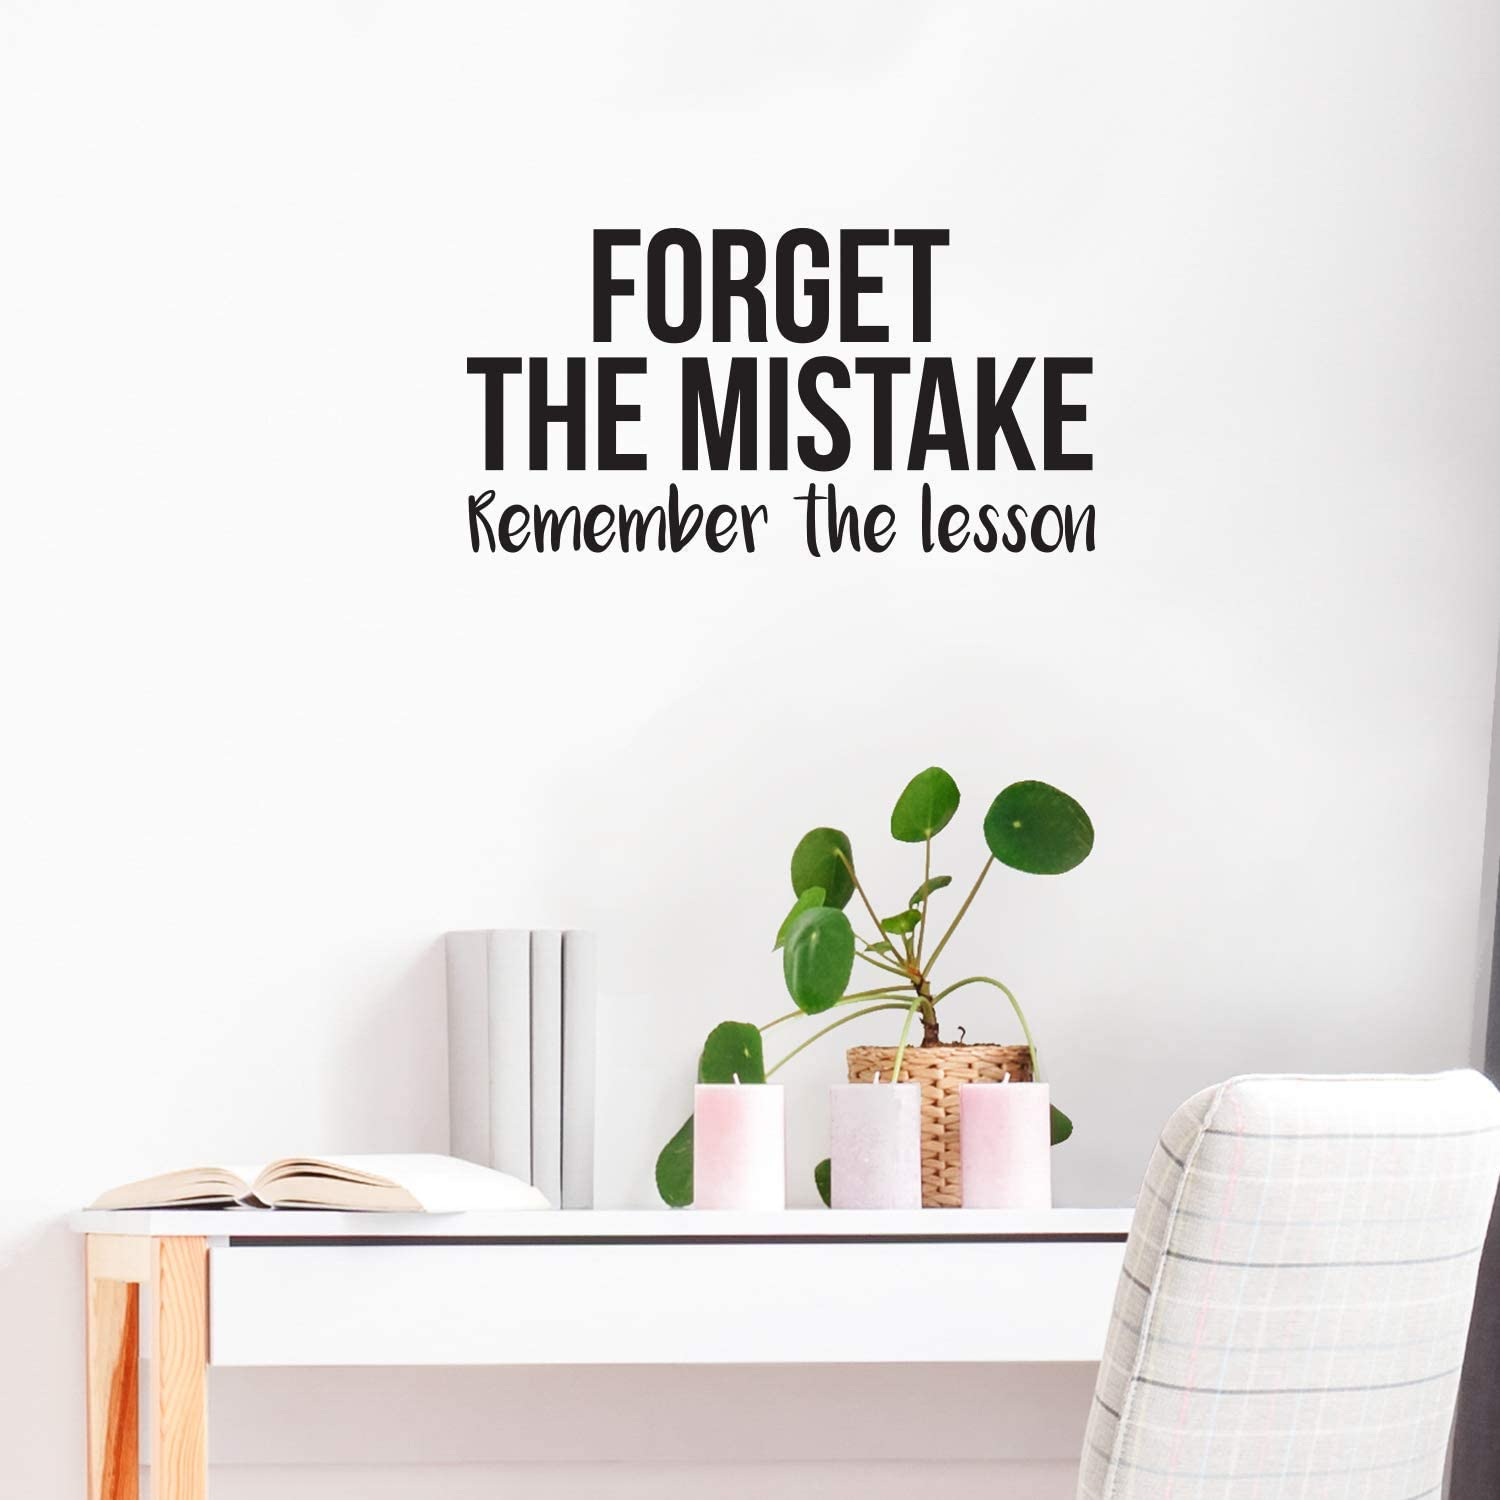 "Vinyl Wall Art Decal - Forget The Mistake Remember The Lesson - 16"" x 30"" - Modern Cute Optimistic Quote Sticker for Bedroom Closet Living Room Playroom Office Classroom School Coffee Shop Decor"